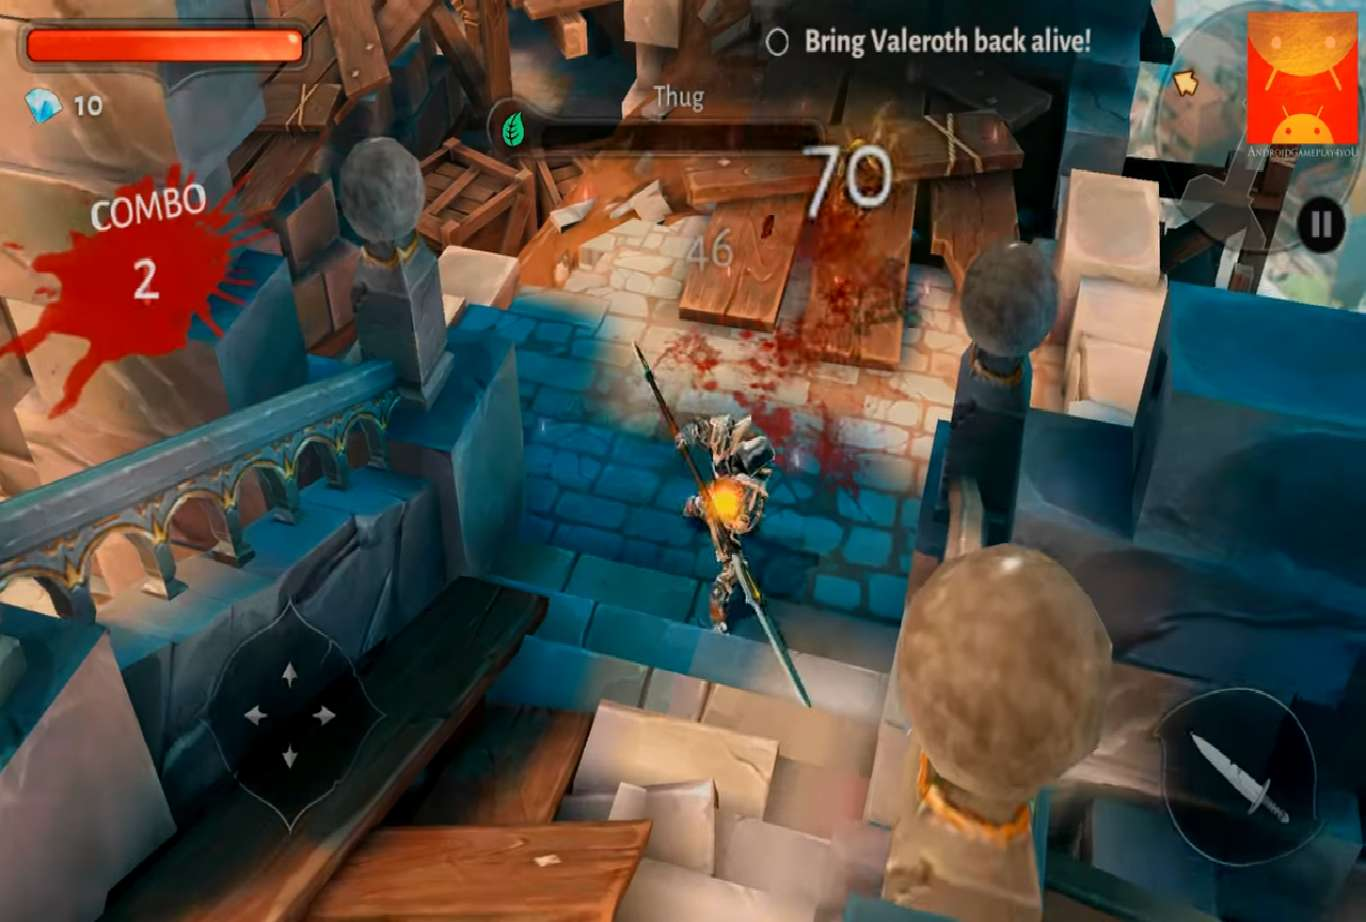 Dungeon Hunter 5 Updates To Version 37 And Brings In Holiday Cheer To The Game